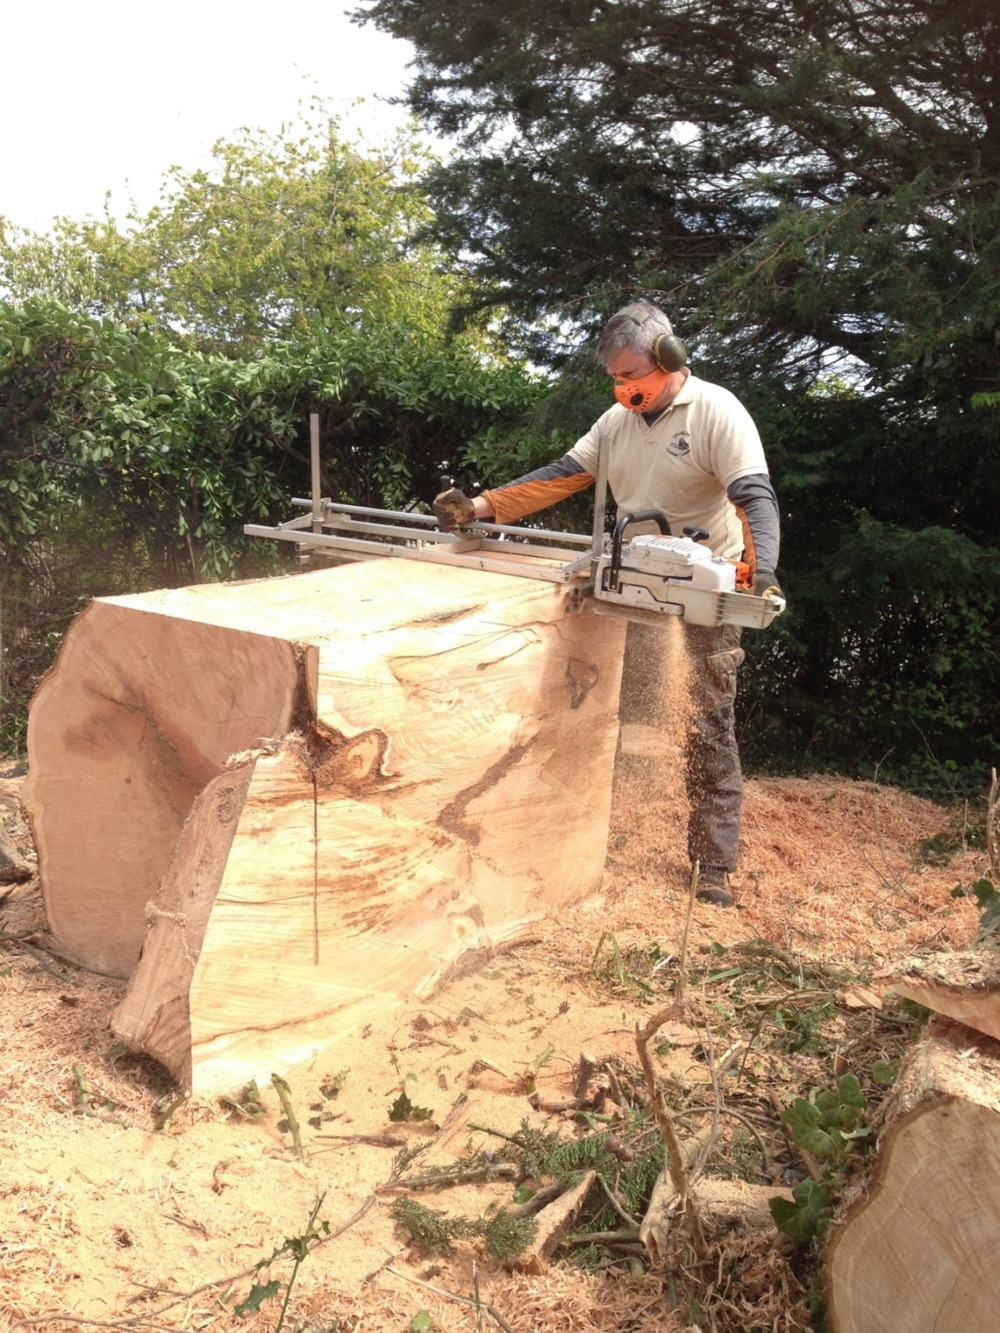 Les langley chainsaw carver carving milling